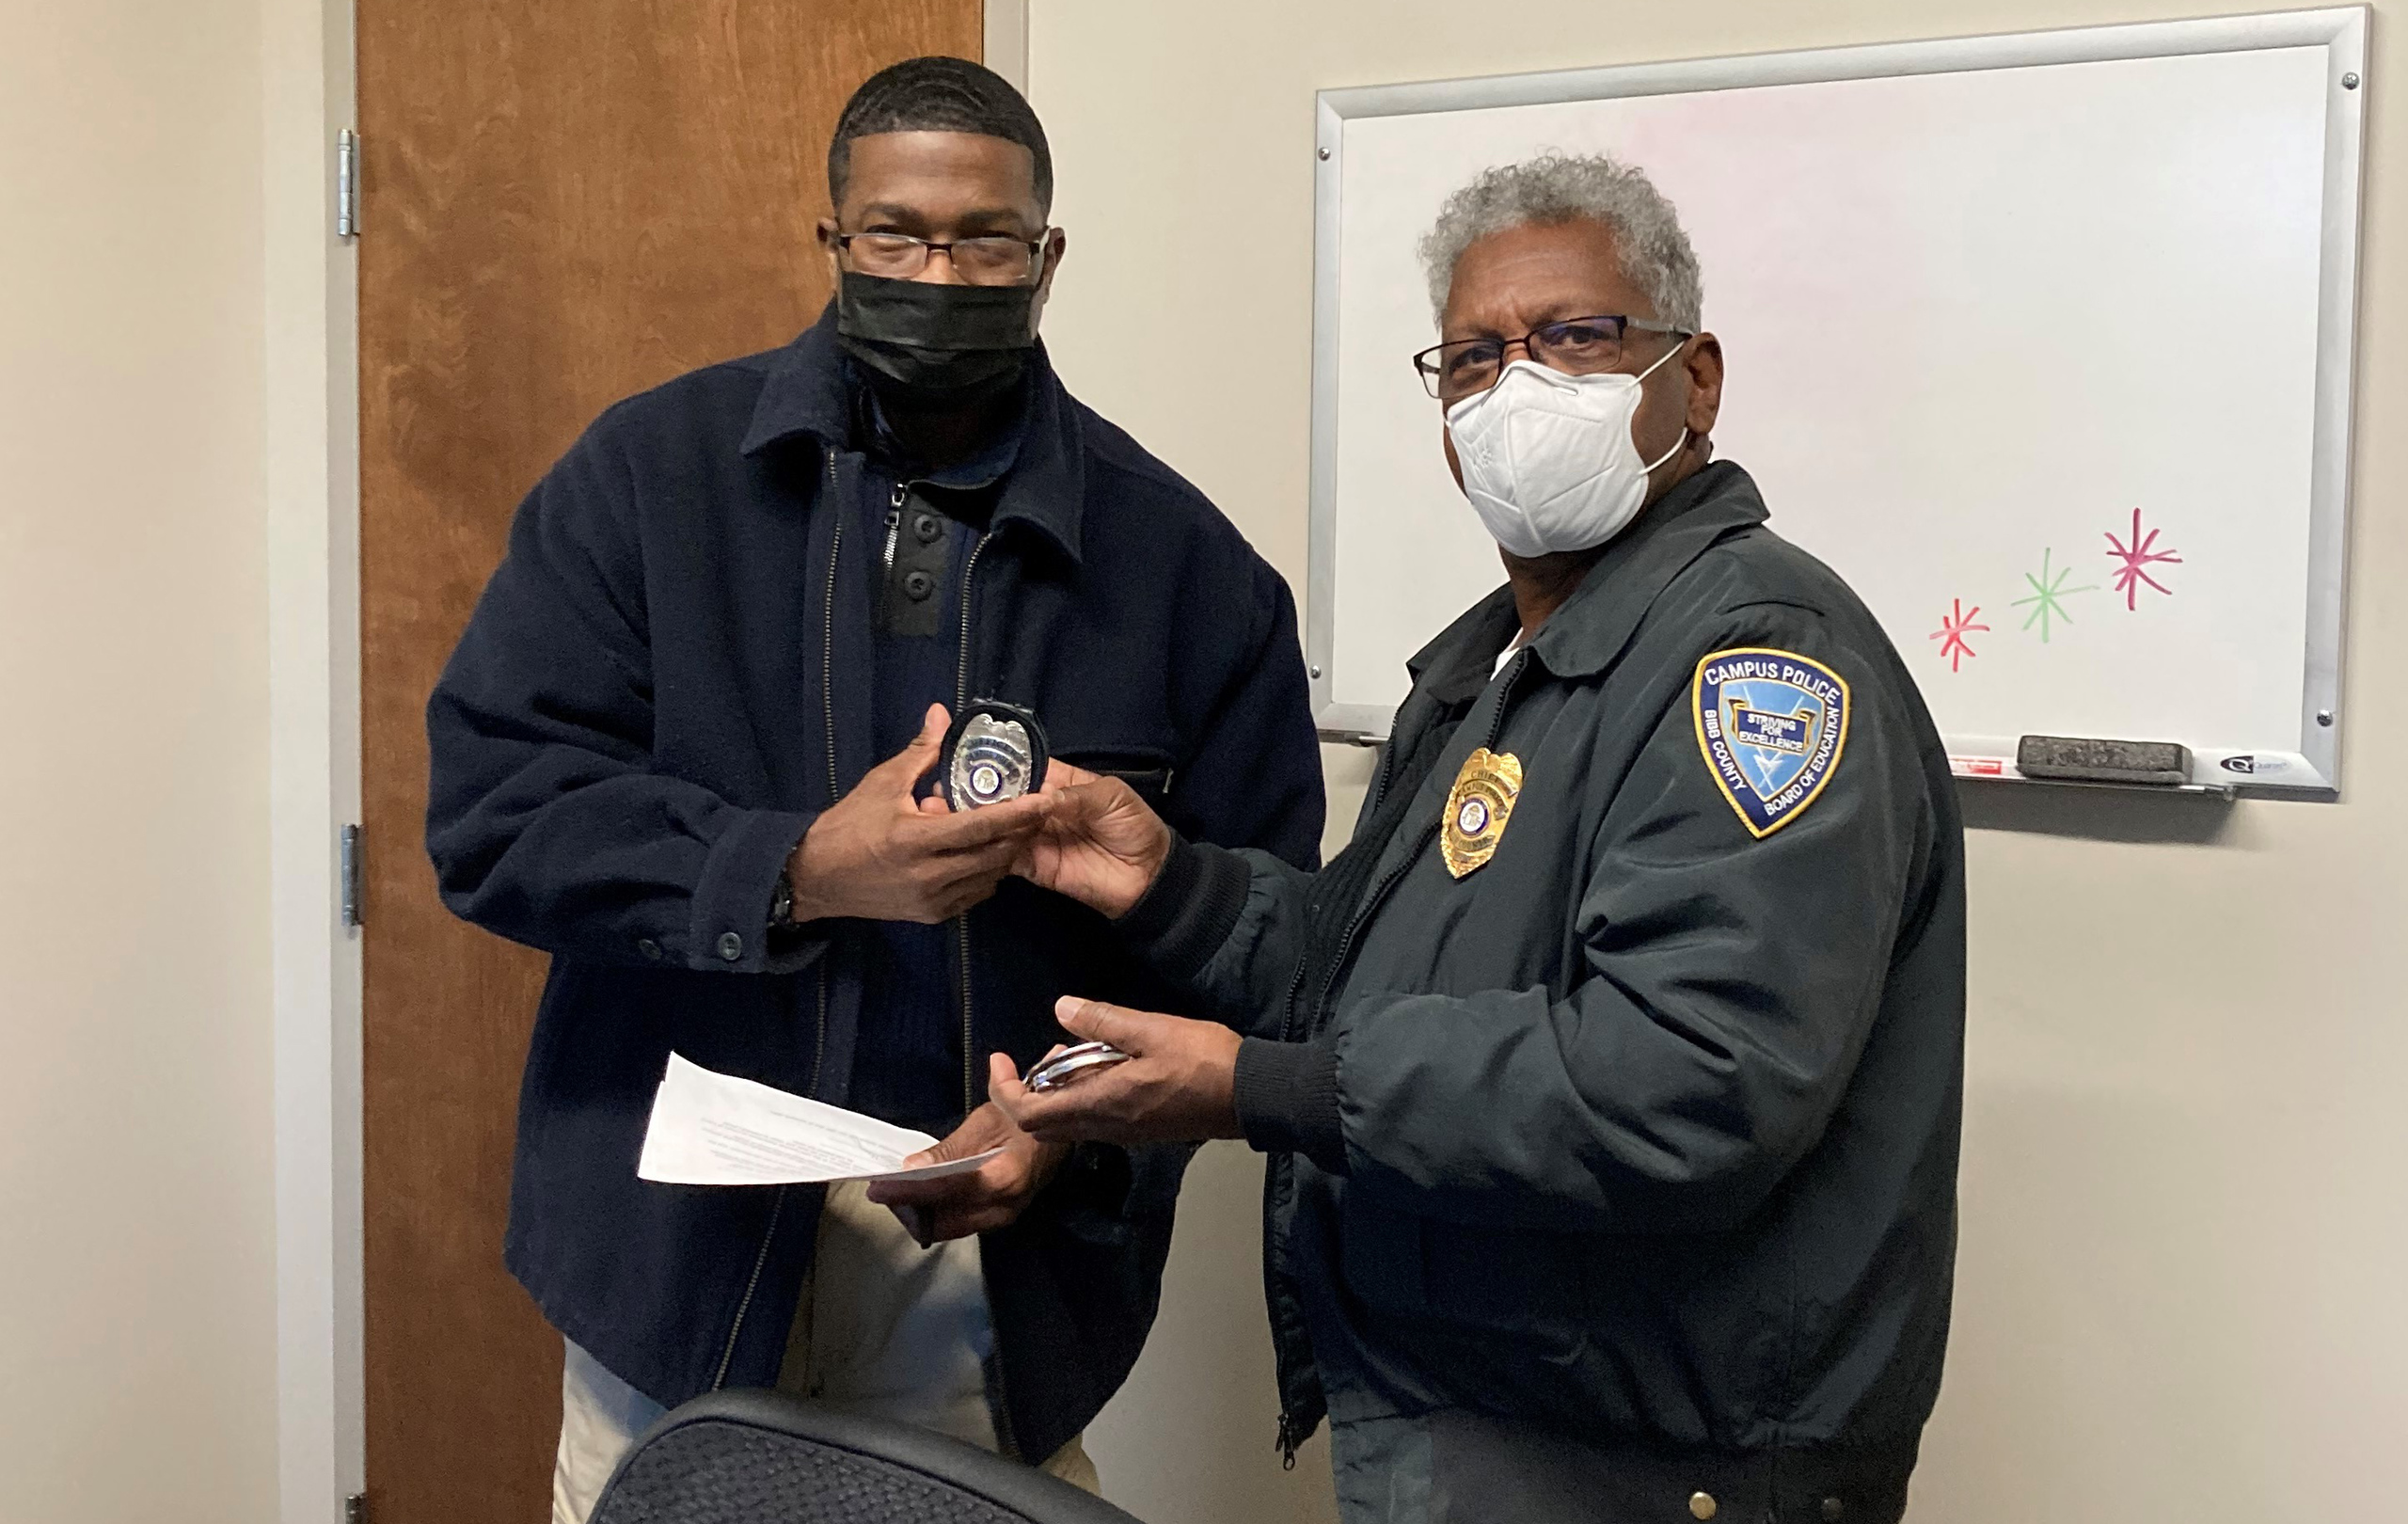 Russell Bentley (pictured right) presents a new officer his police badge after taking the Georgia Peace Officer's Oath of Office.